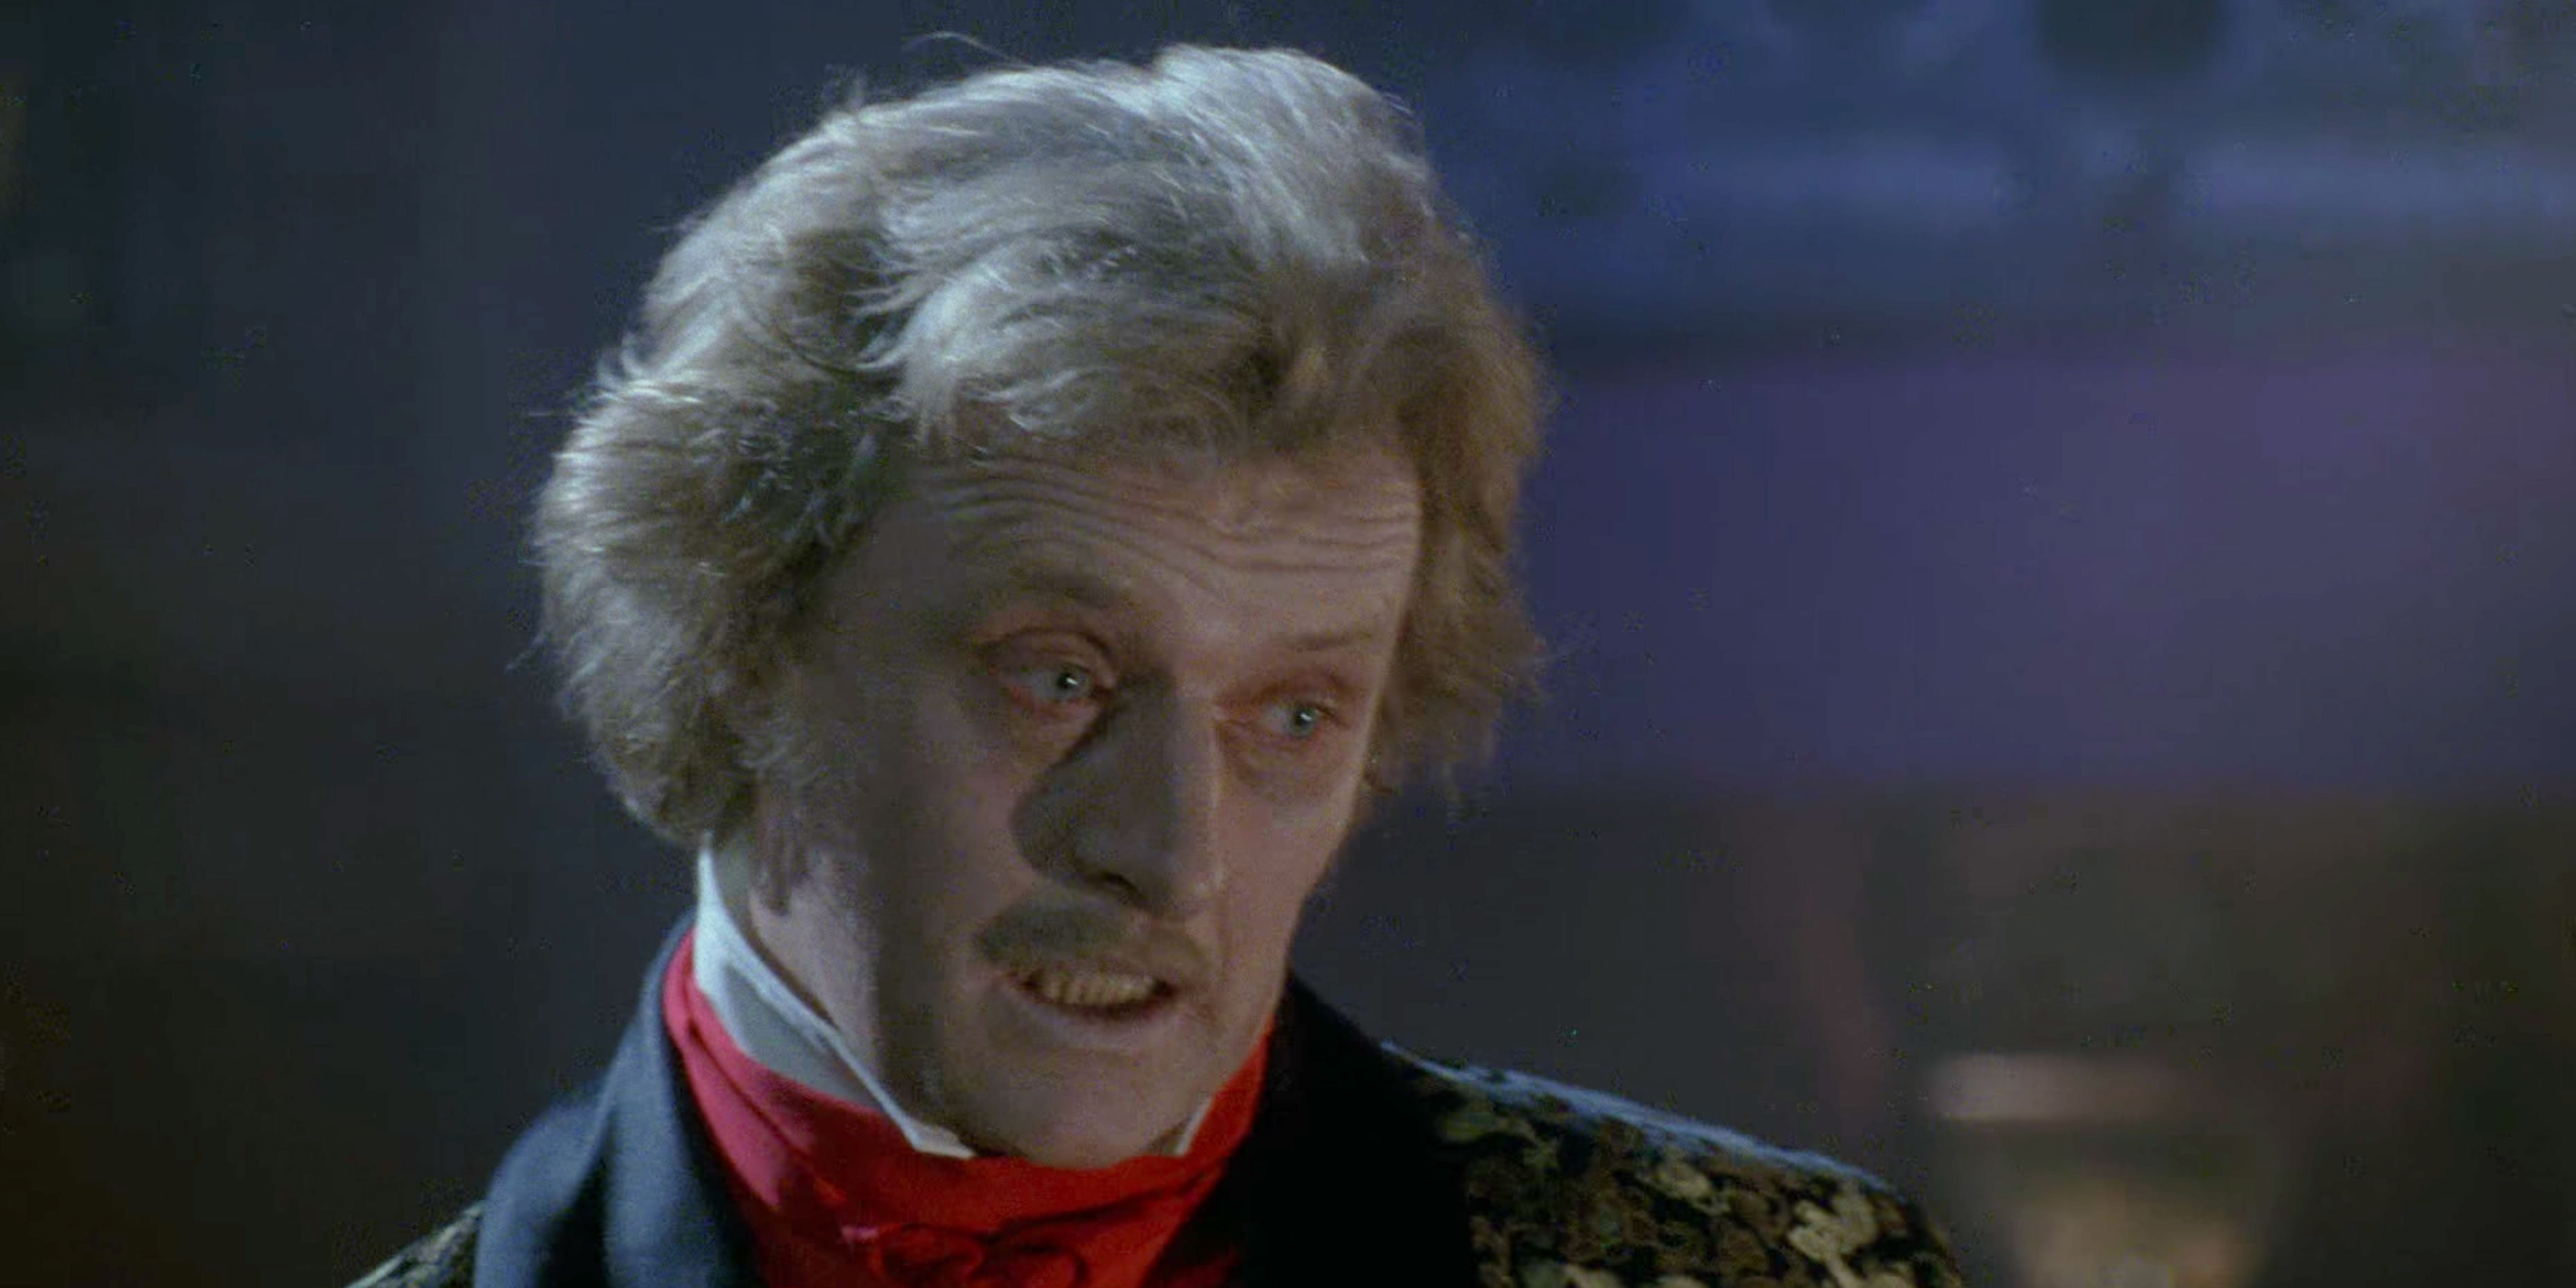 Rutger Hauer as Lothos